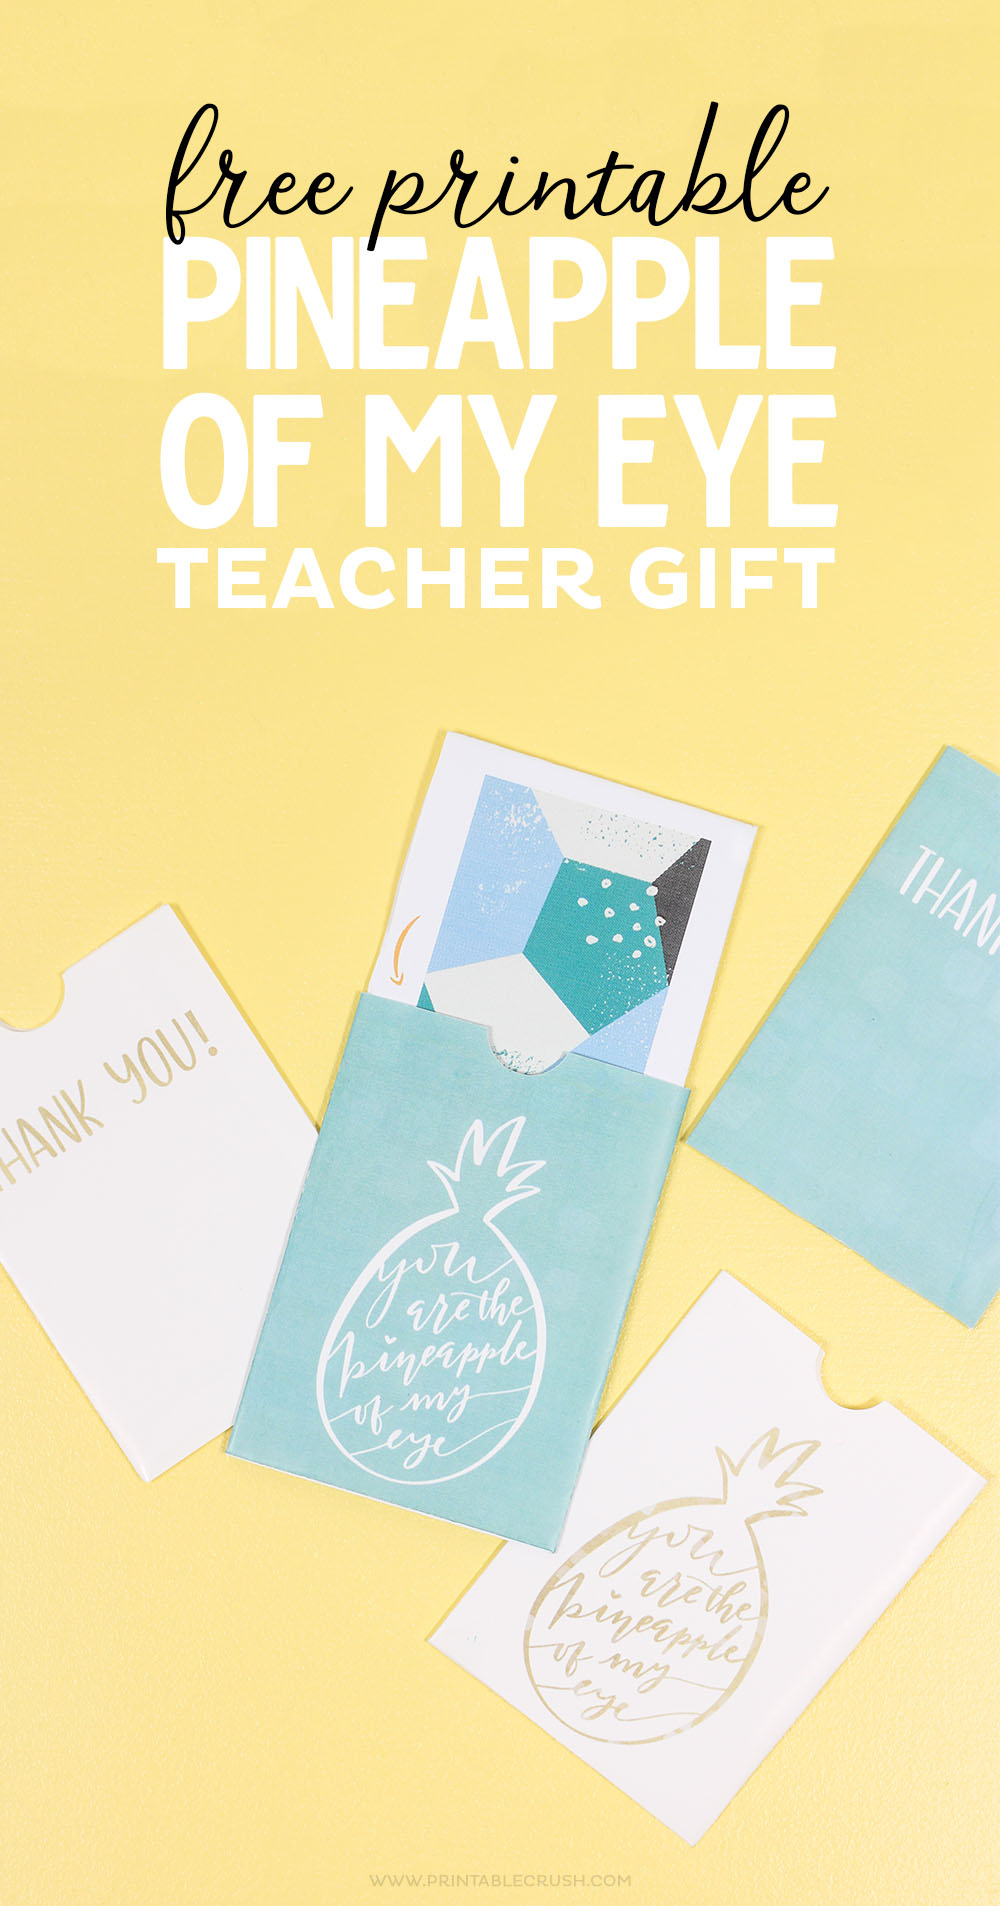 We all know teachers love GIFT CARDS for teacher appreciation week...so download this free printable Pineapple of My Eye Teacher Gift Card Holder!